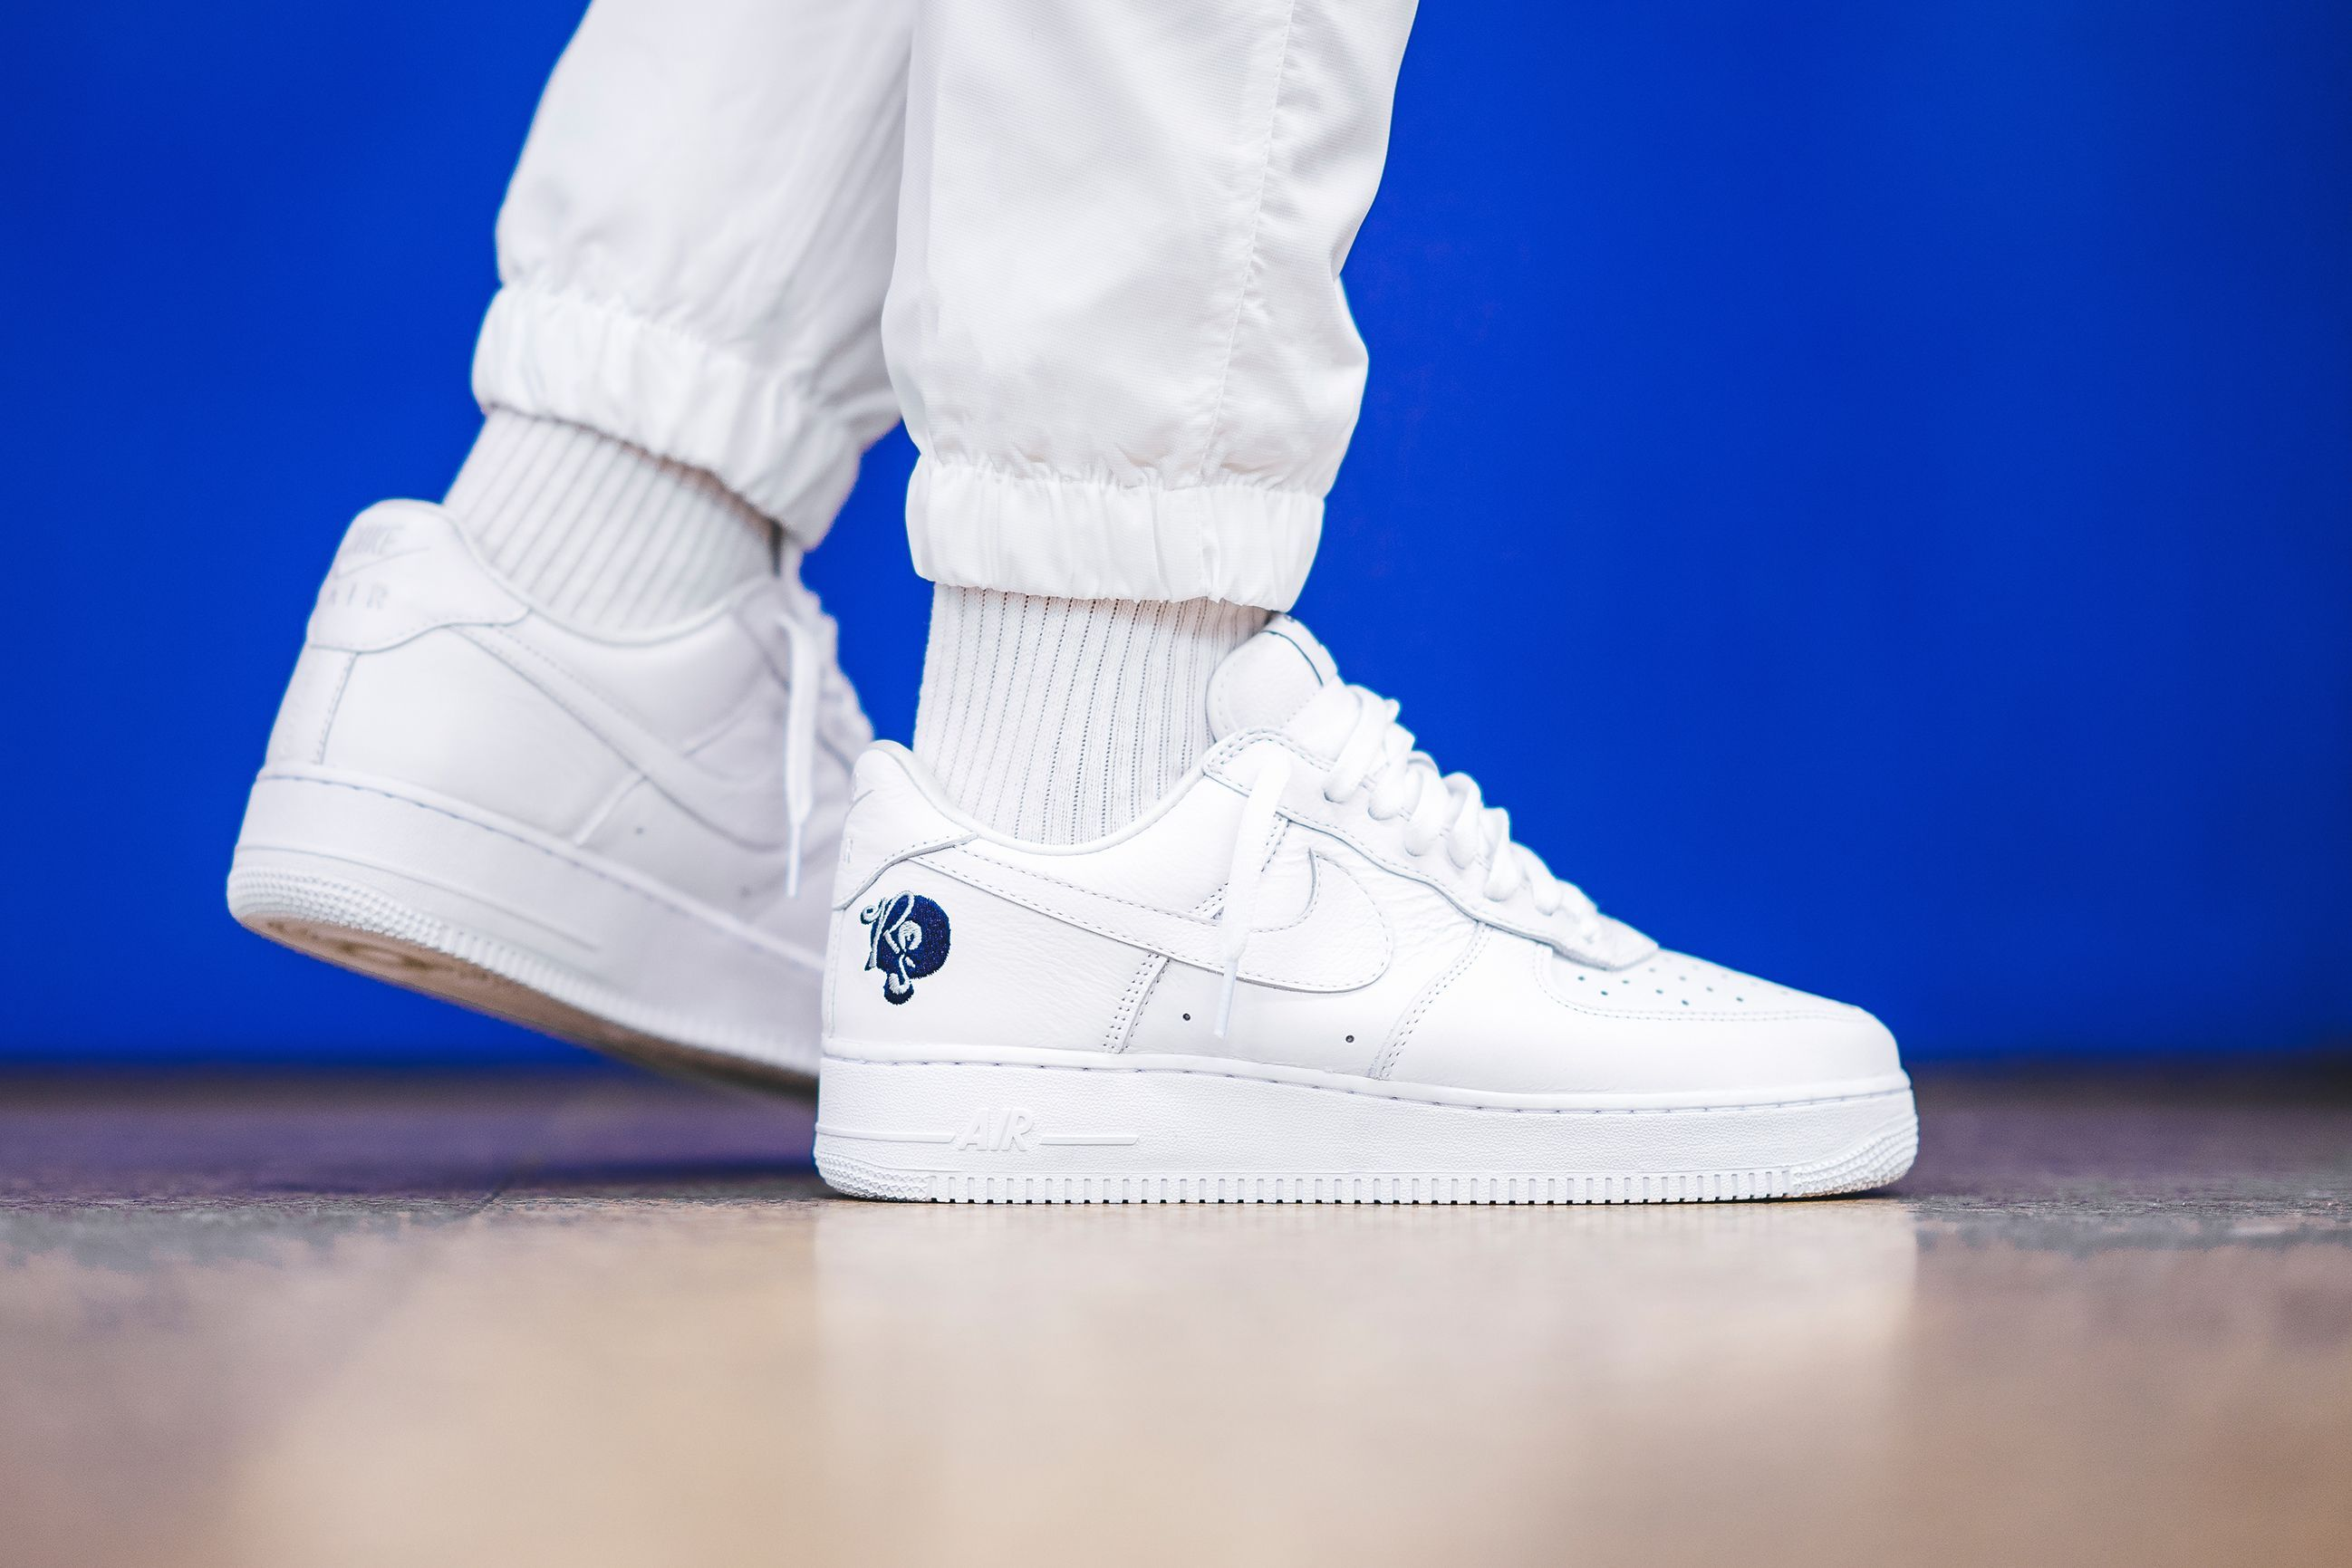 Rocafella x Nike Air Force 1 Low Nike air force, Air force and Ootd